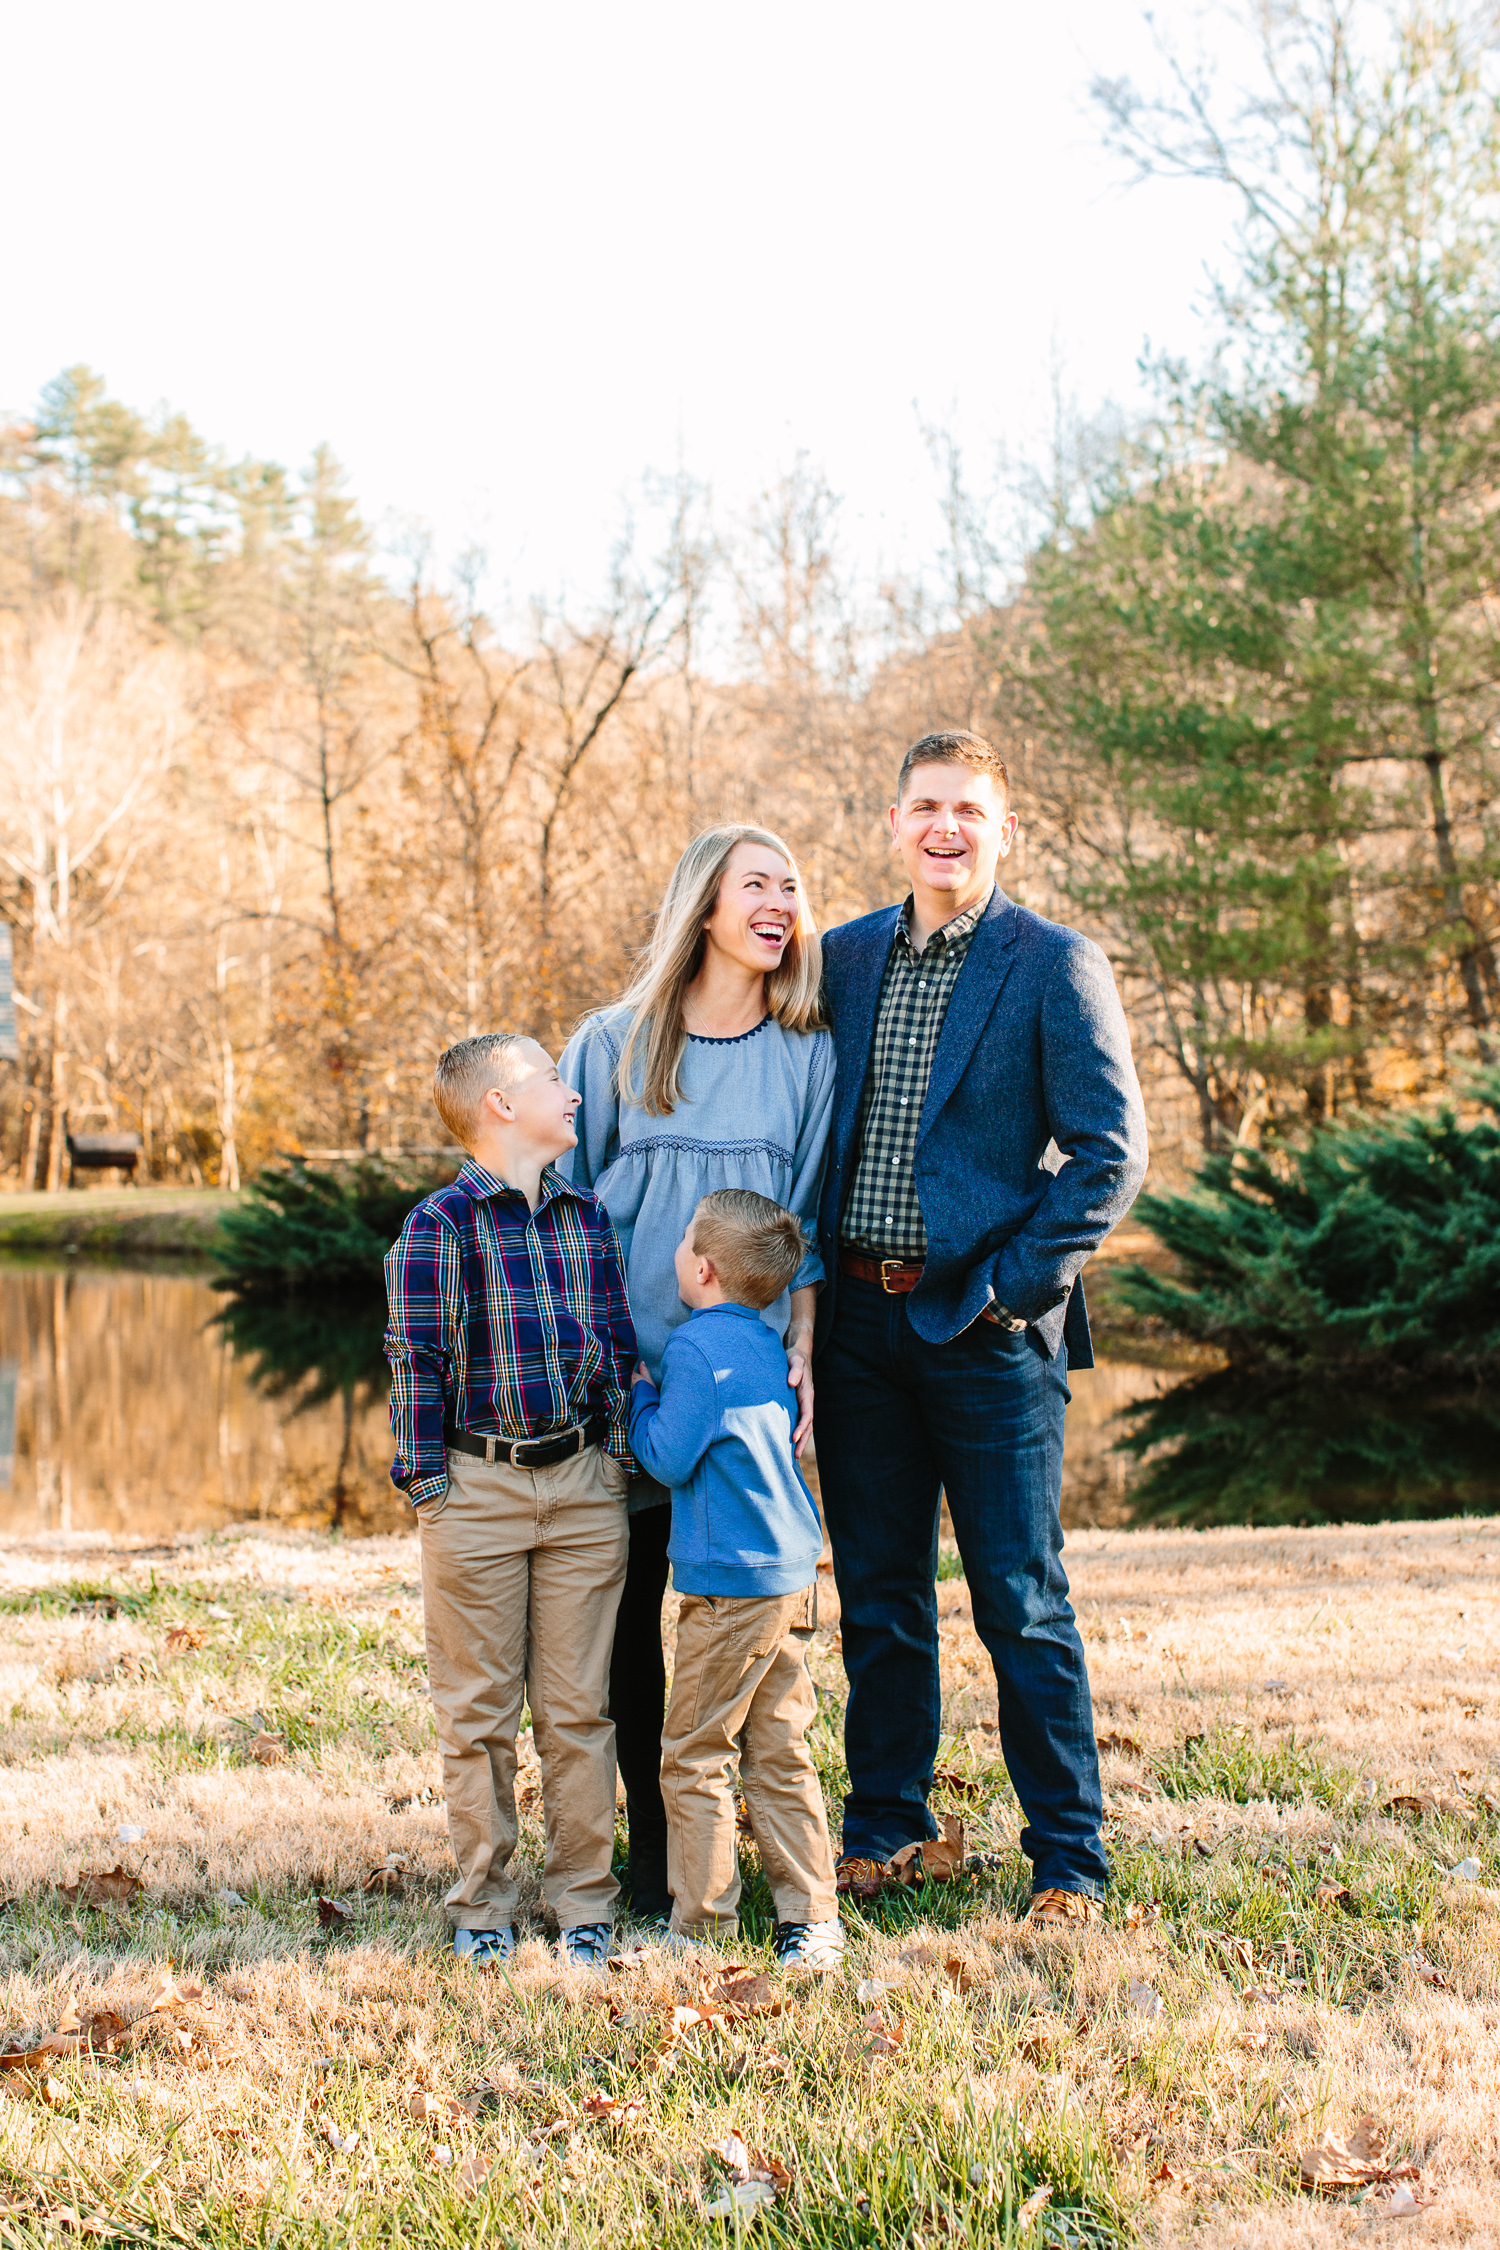 The Getterman Family - Blackberry Farms Fall Photos